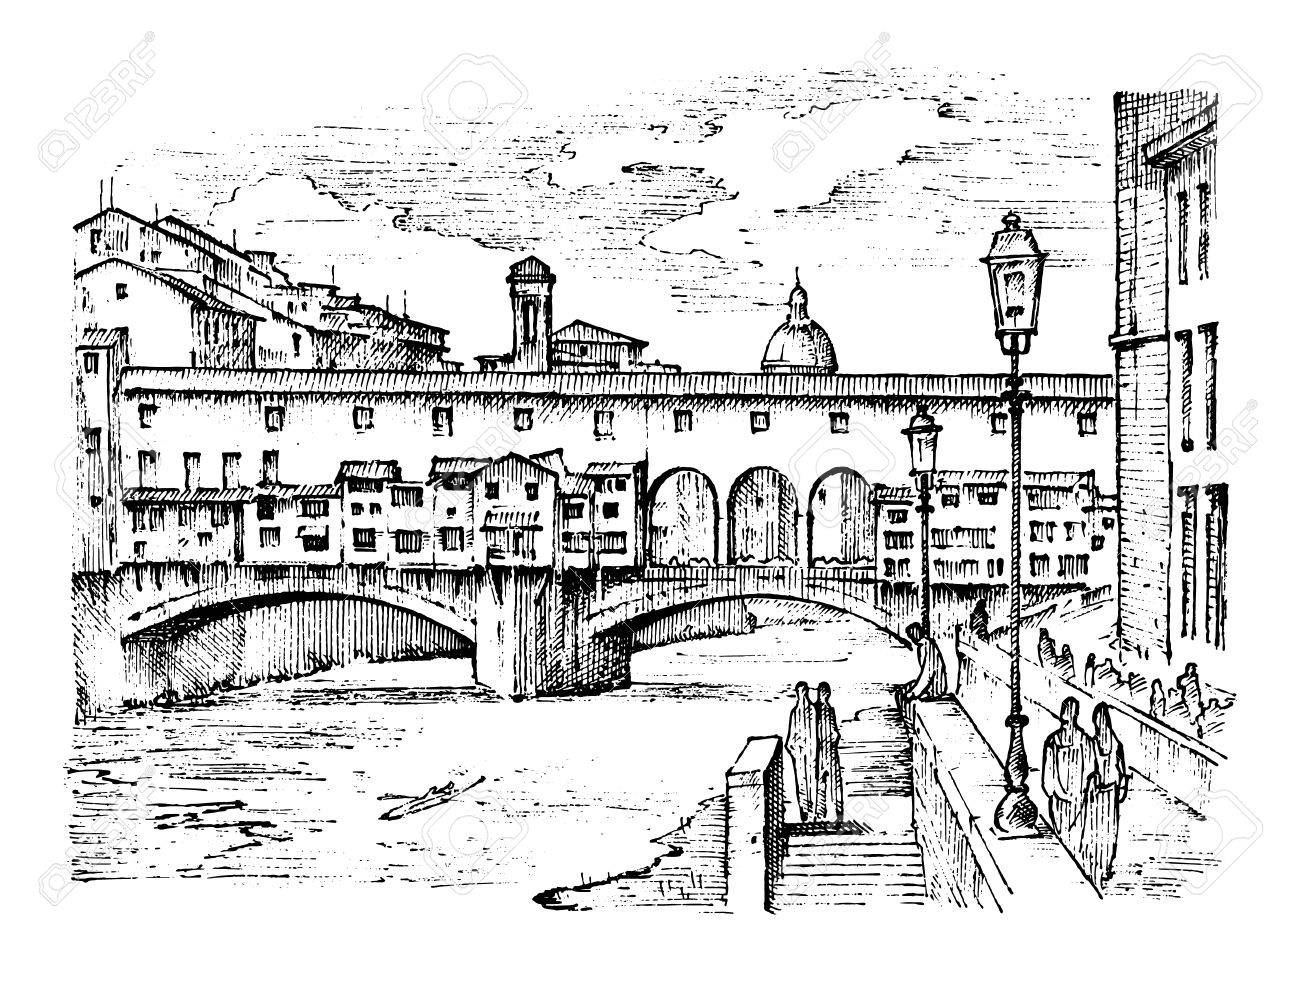 landscape in European town Florence in Italy. engraved hand drawn in old sketch and vintage style. historical architecture with buildings, perspective view. Travel postcard. Ponte Vecchio bridge. - 83368089